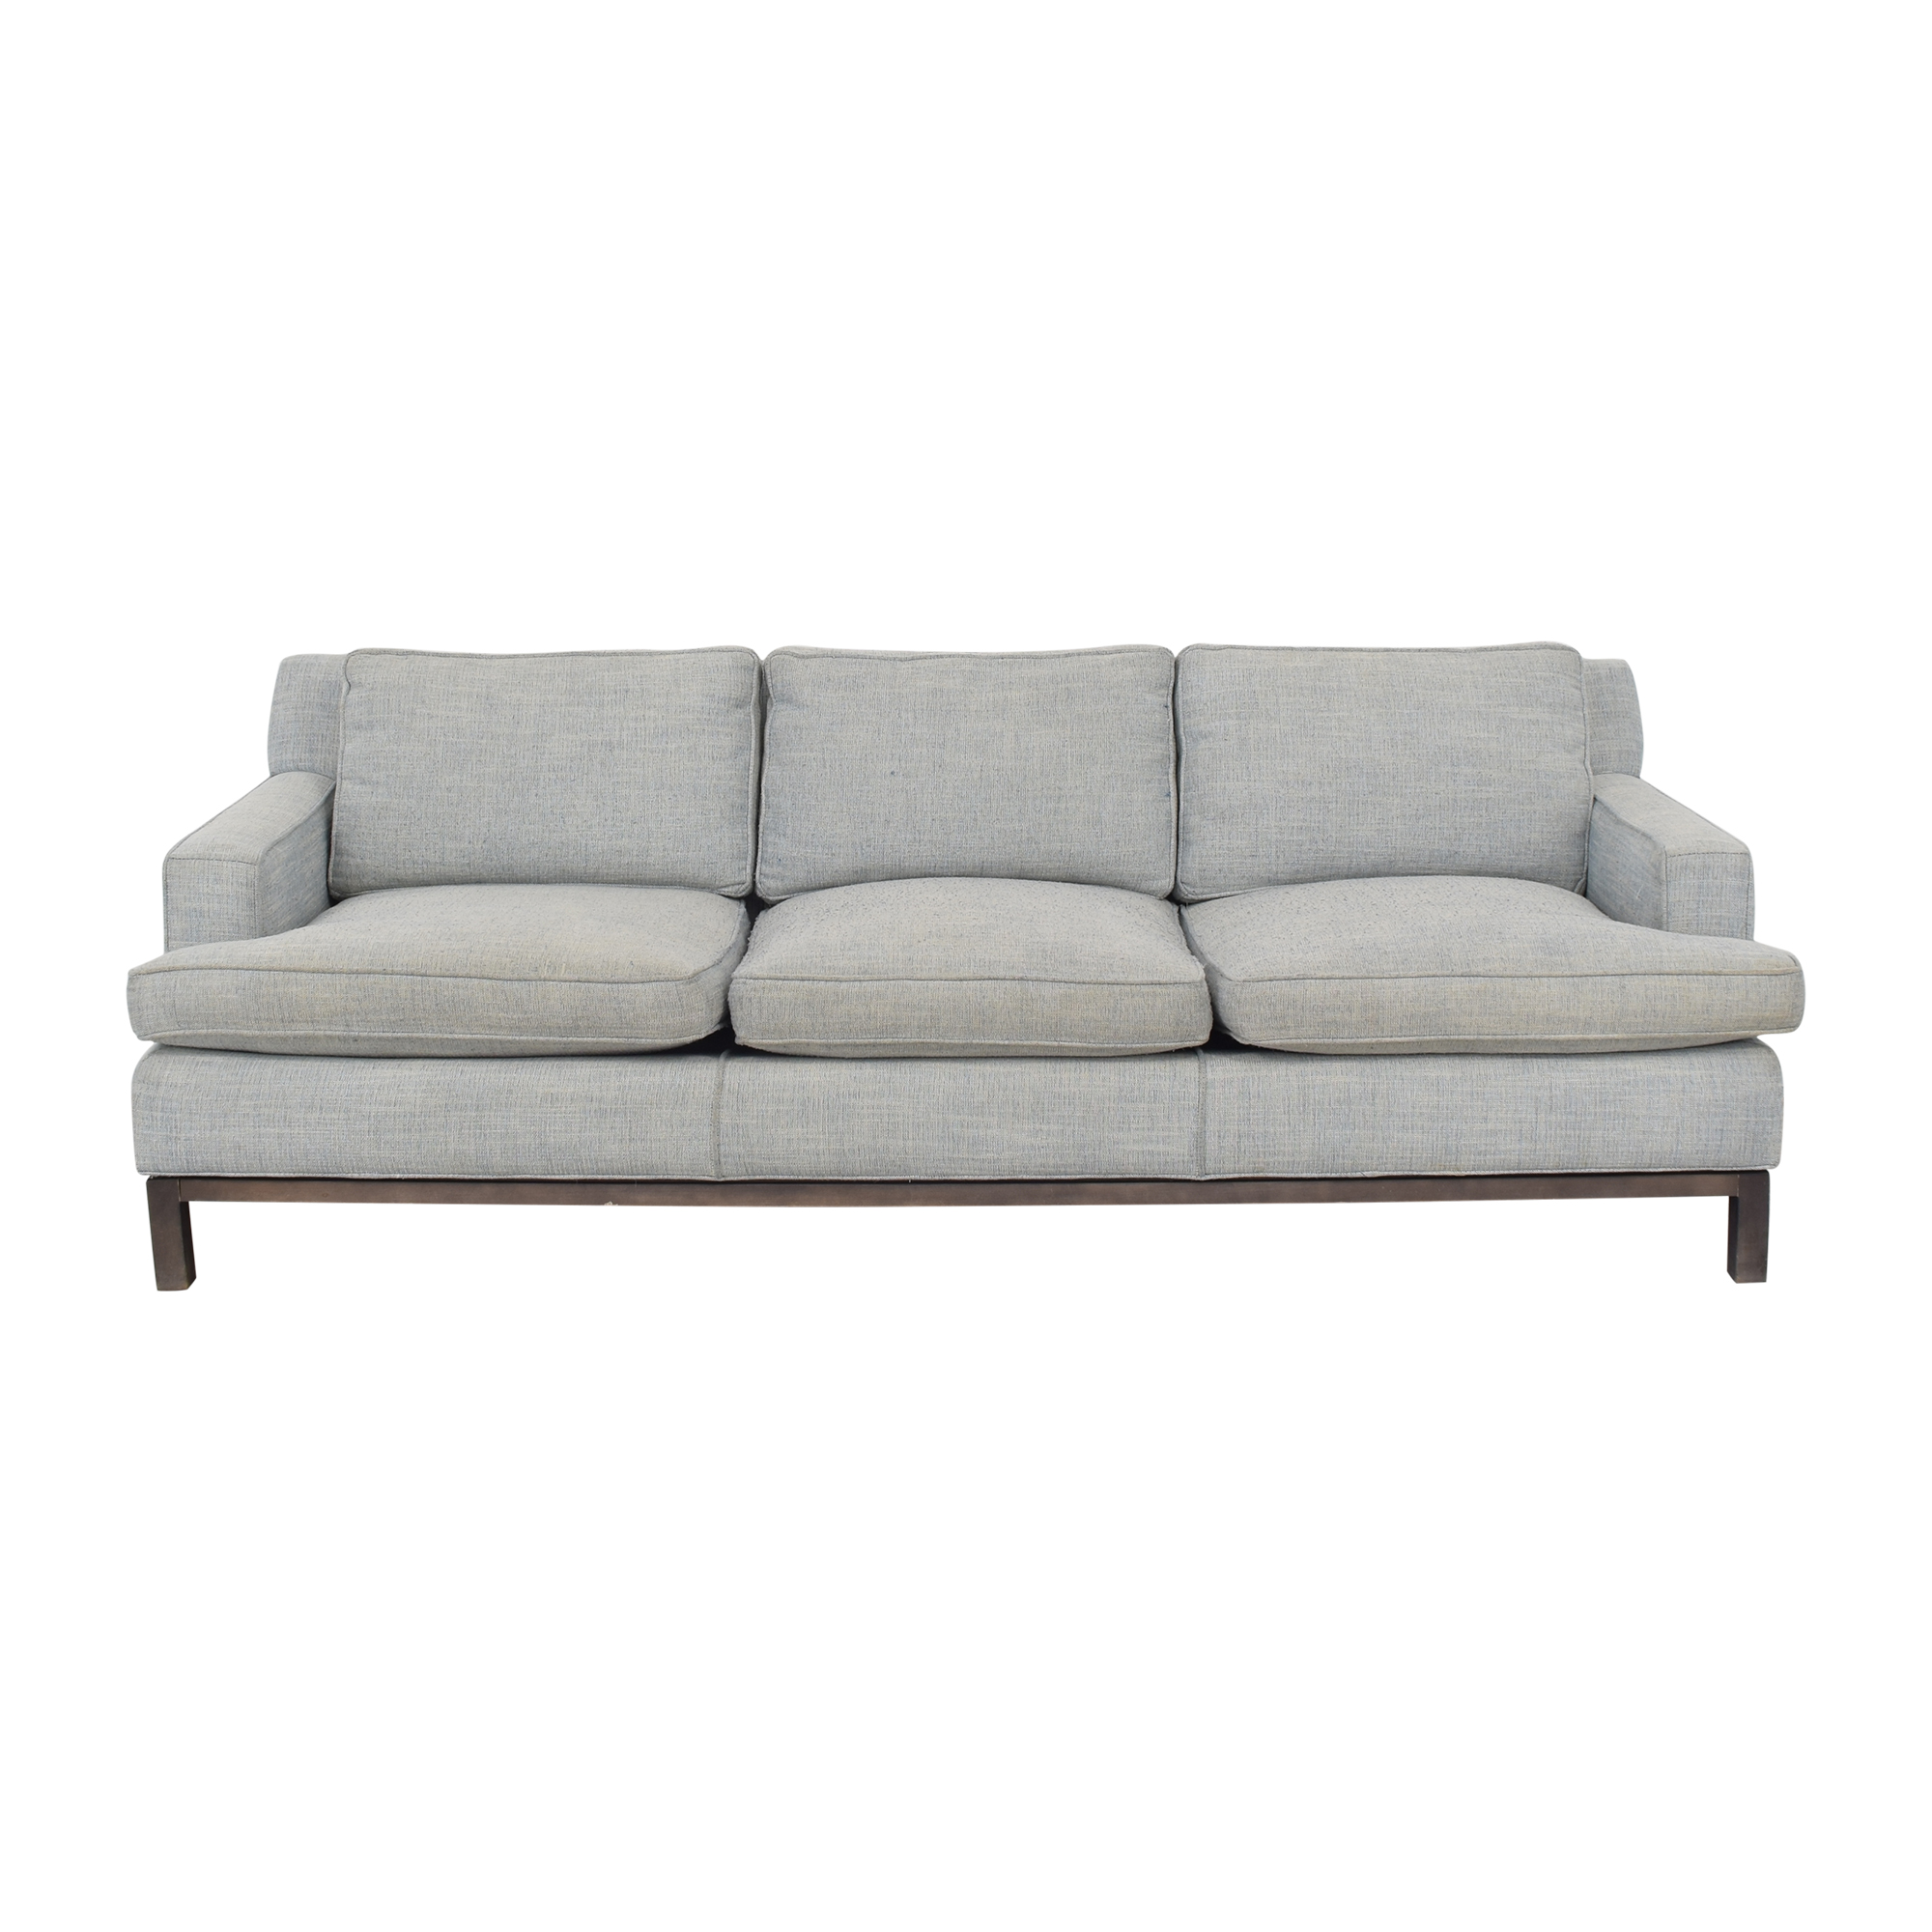 Jonathan Adler Butterfield Sofa sale